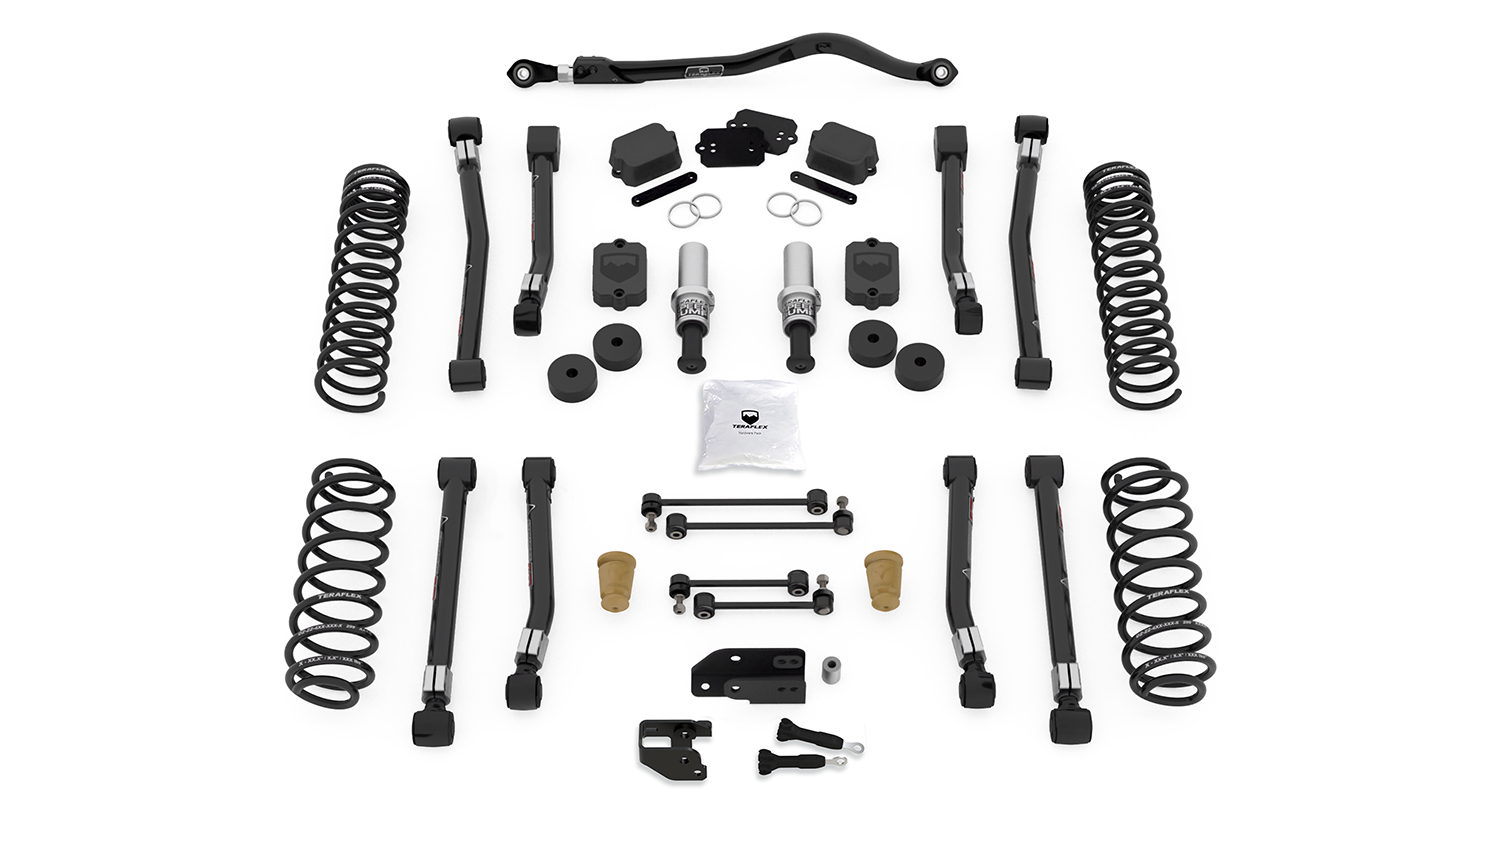 Teraflex 3.5in Alpine RT3 Short Arm Suspension System - No Shocks - JL 4Dr